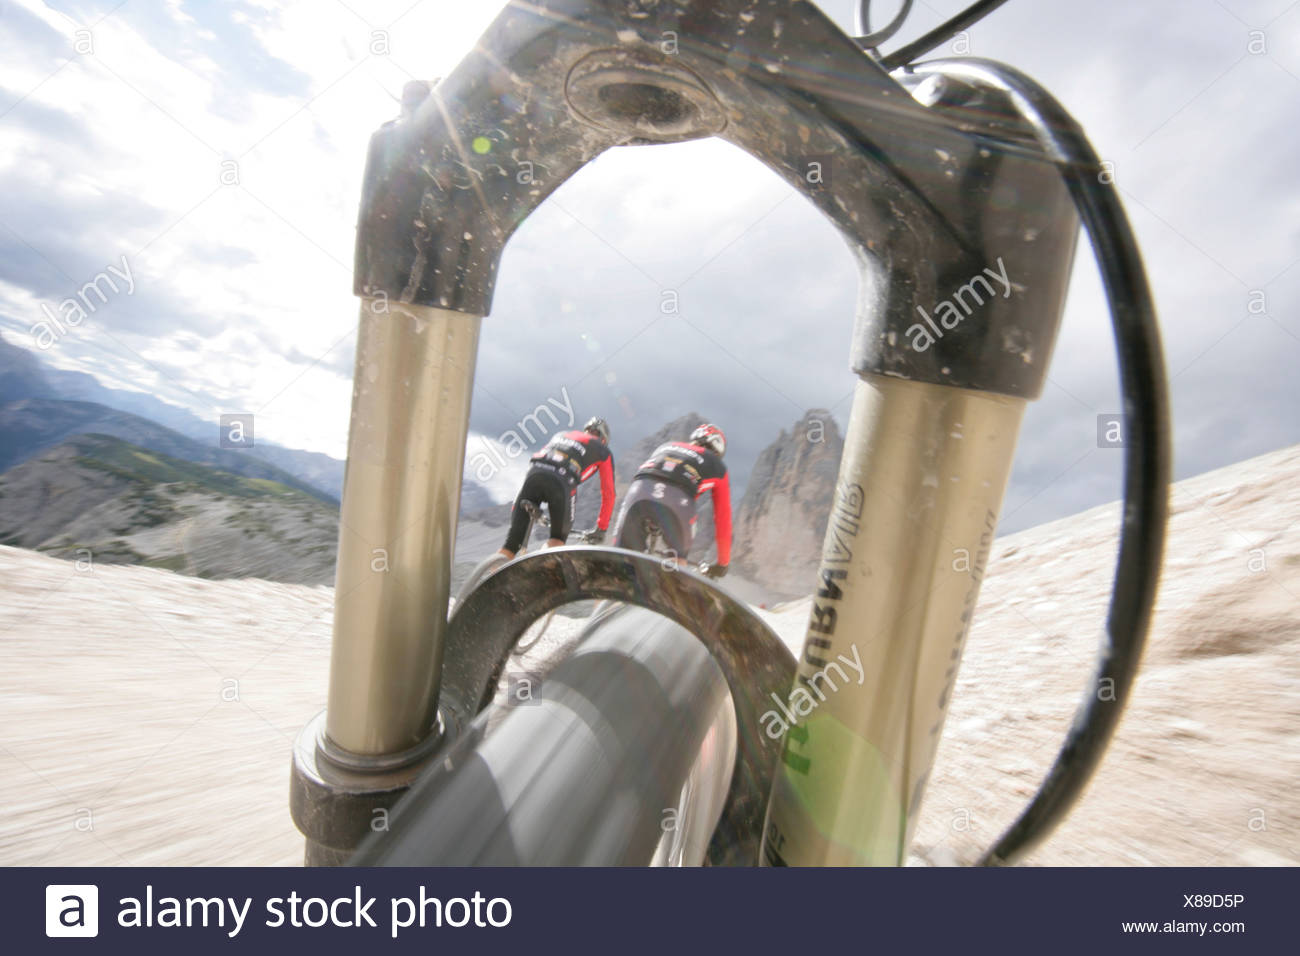 Persons mountain biking near Tre Cime di Lavaredo, Veneto, Italy - Stock Image